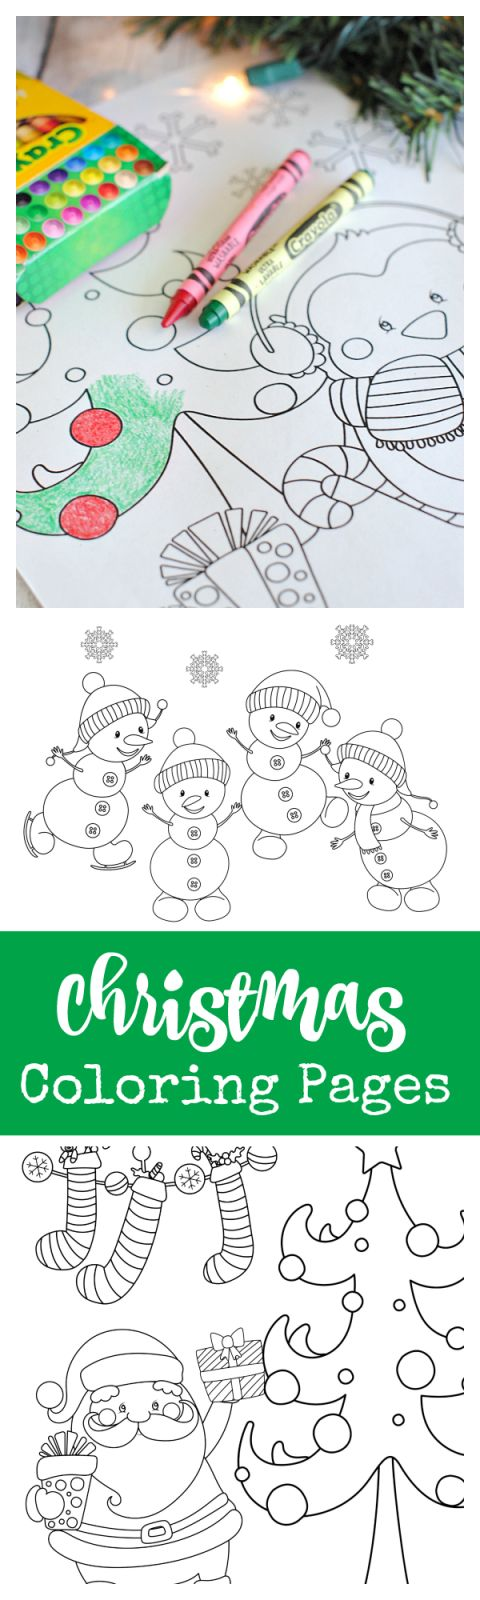 free printable christmas coloring pages - Holiday Printables For Kids